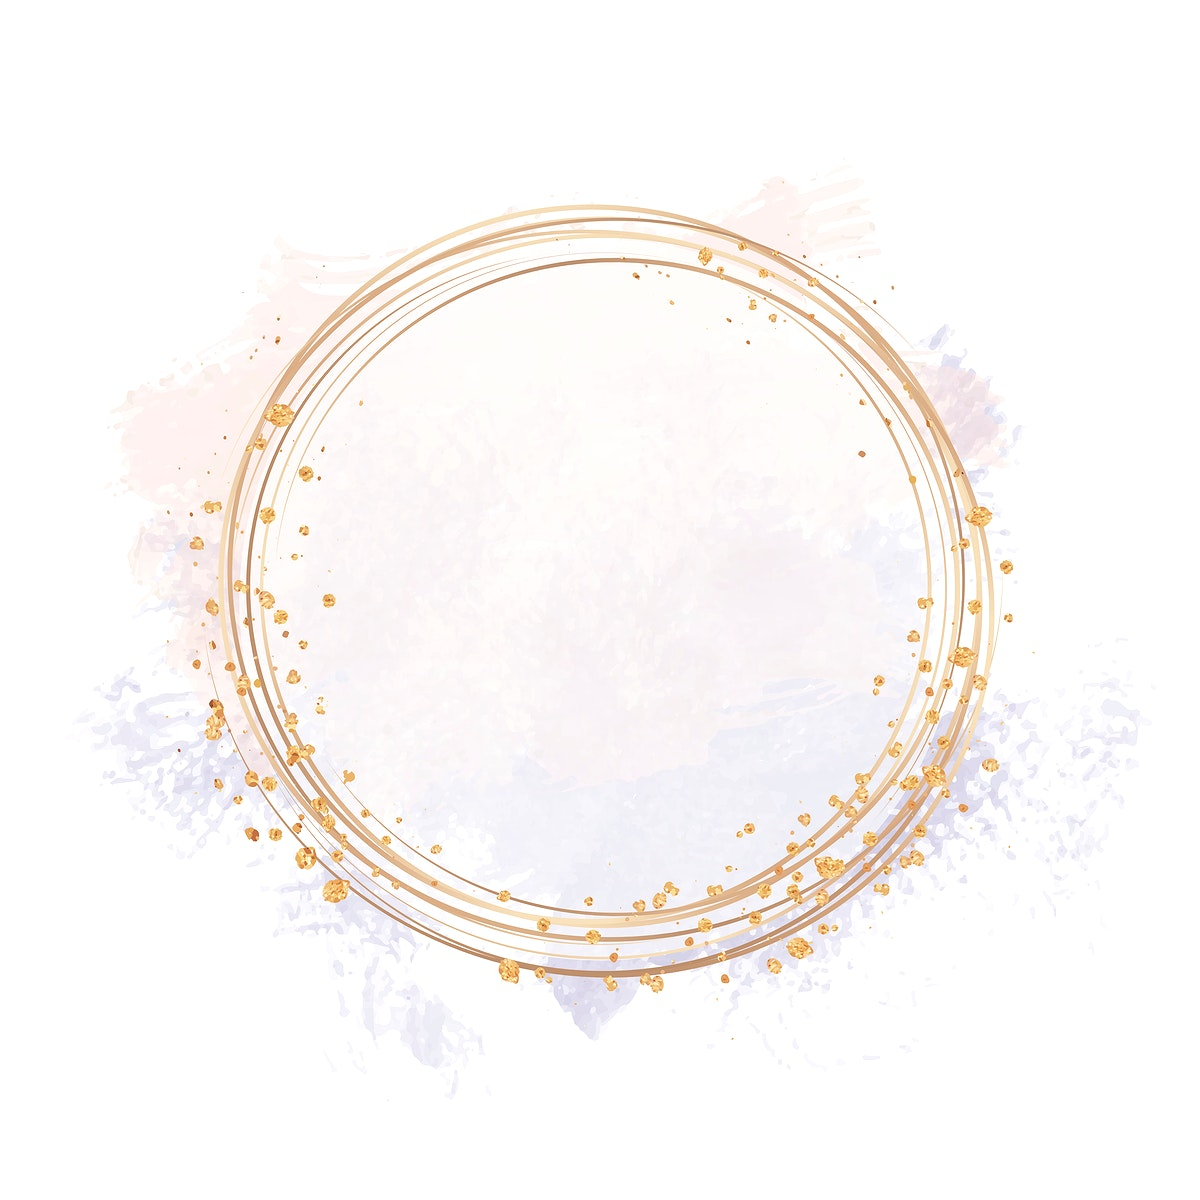 Gold circle frame on a pastel pink and purple background illustration